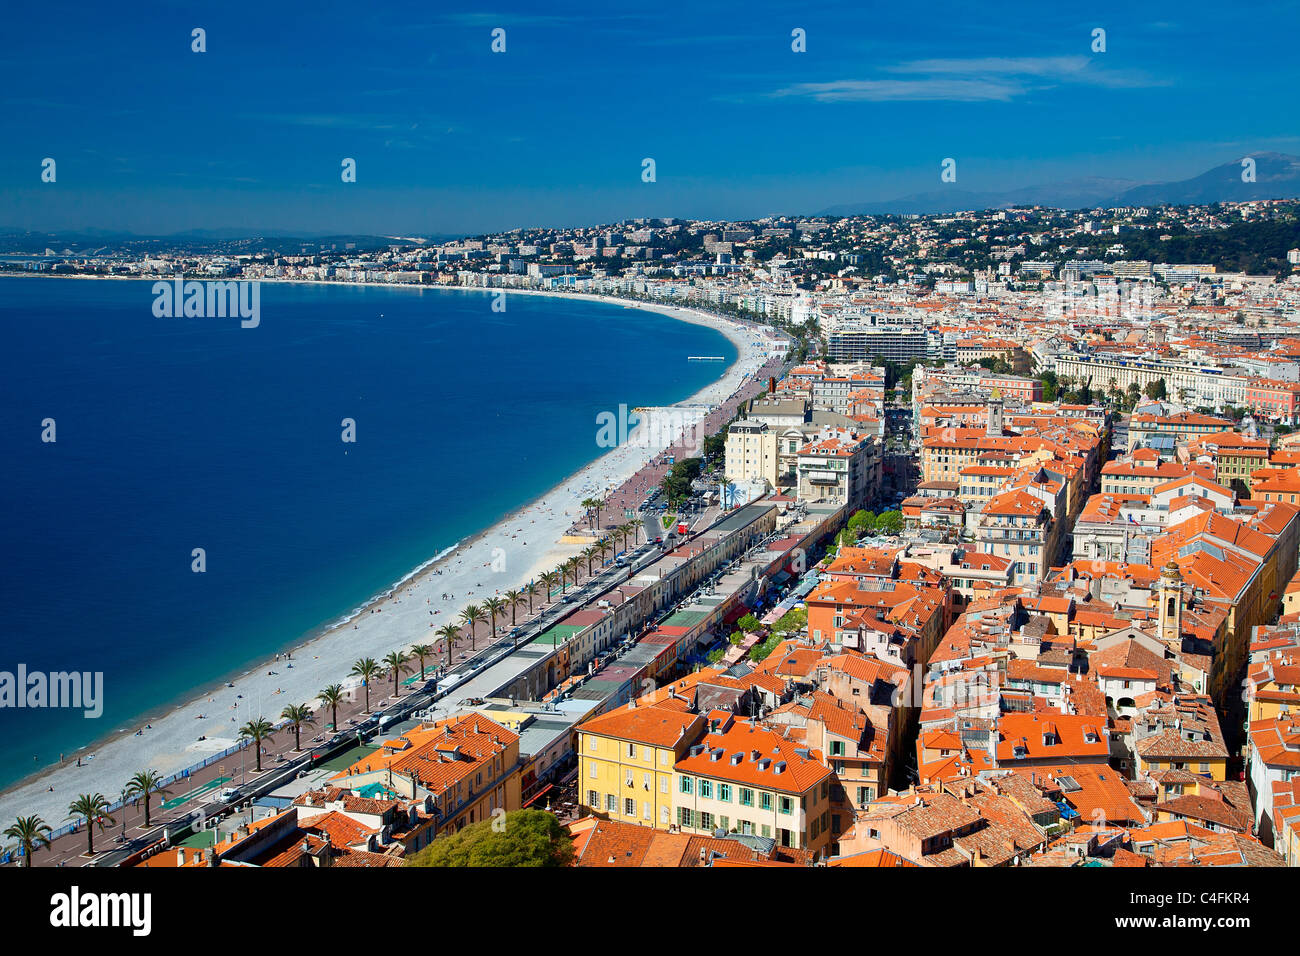 Europe, France, Alpes-Maritimes (06), Beach and Promenade des Anglais in Nice - Stock Image